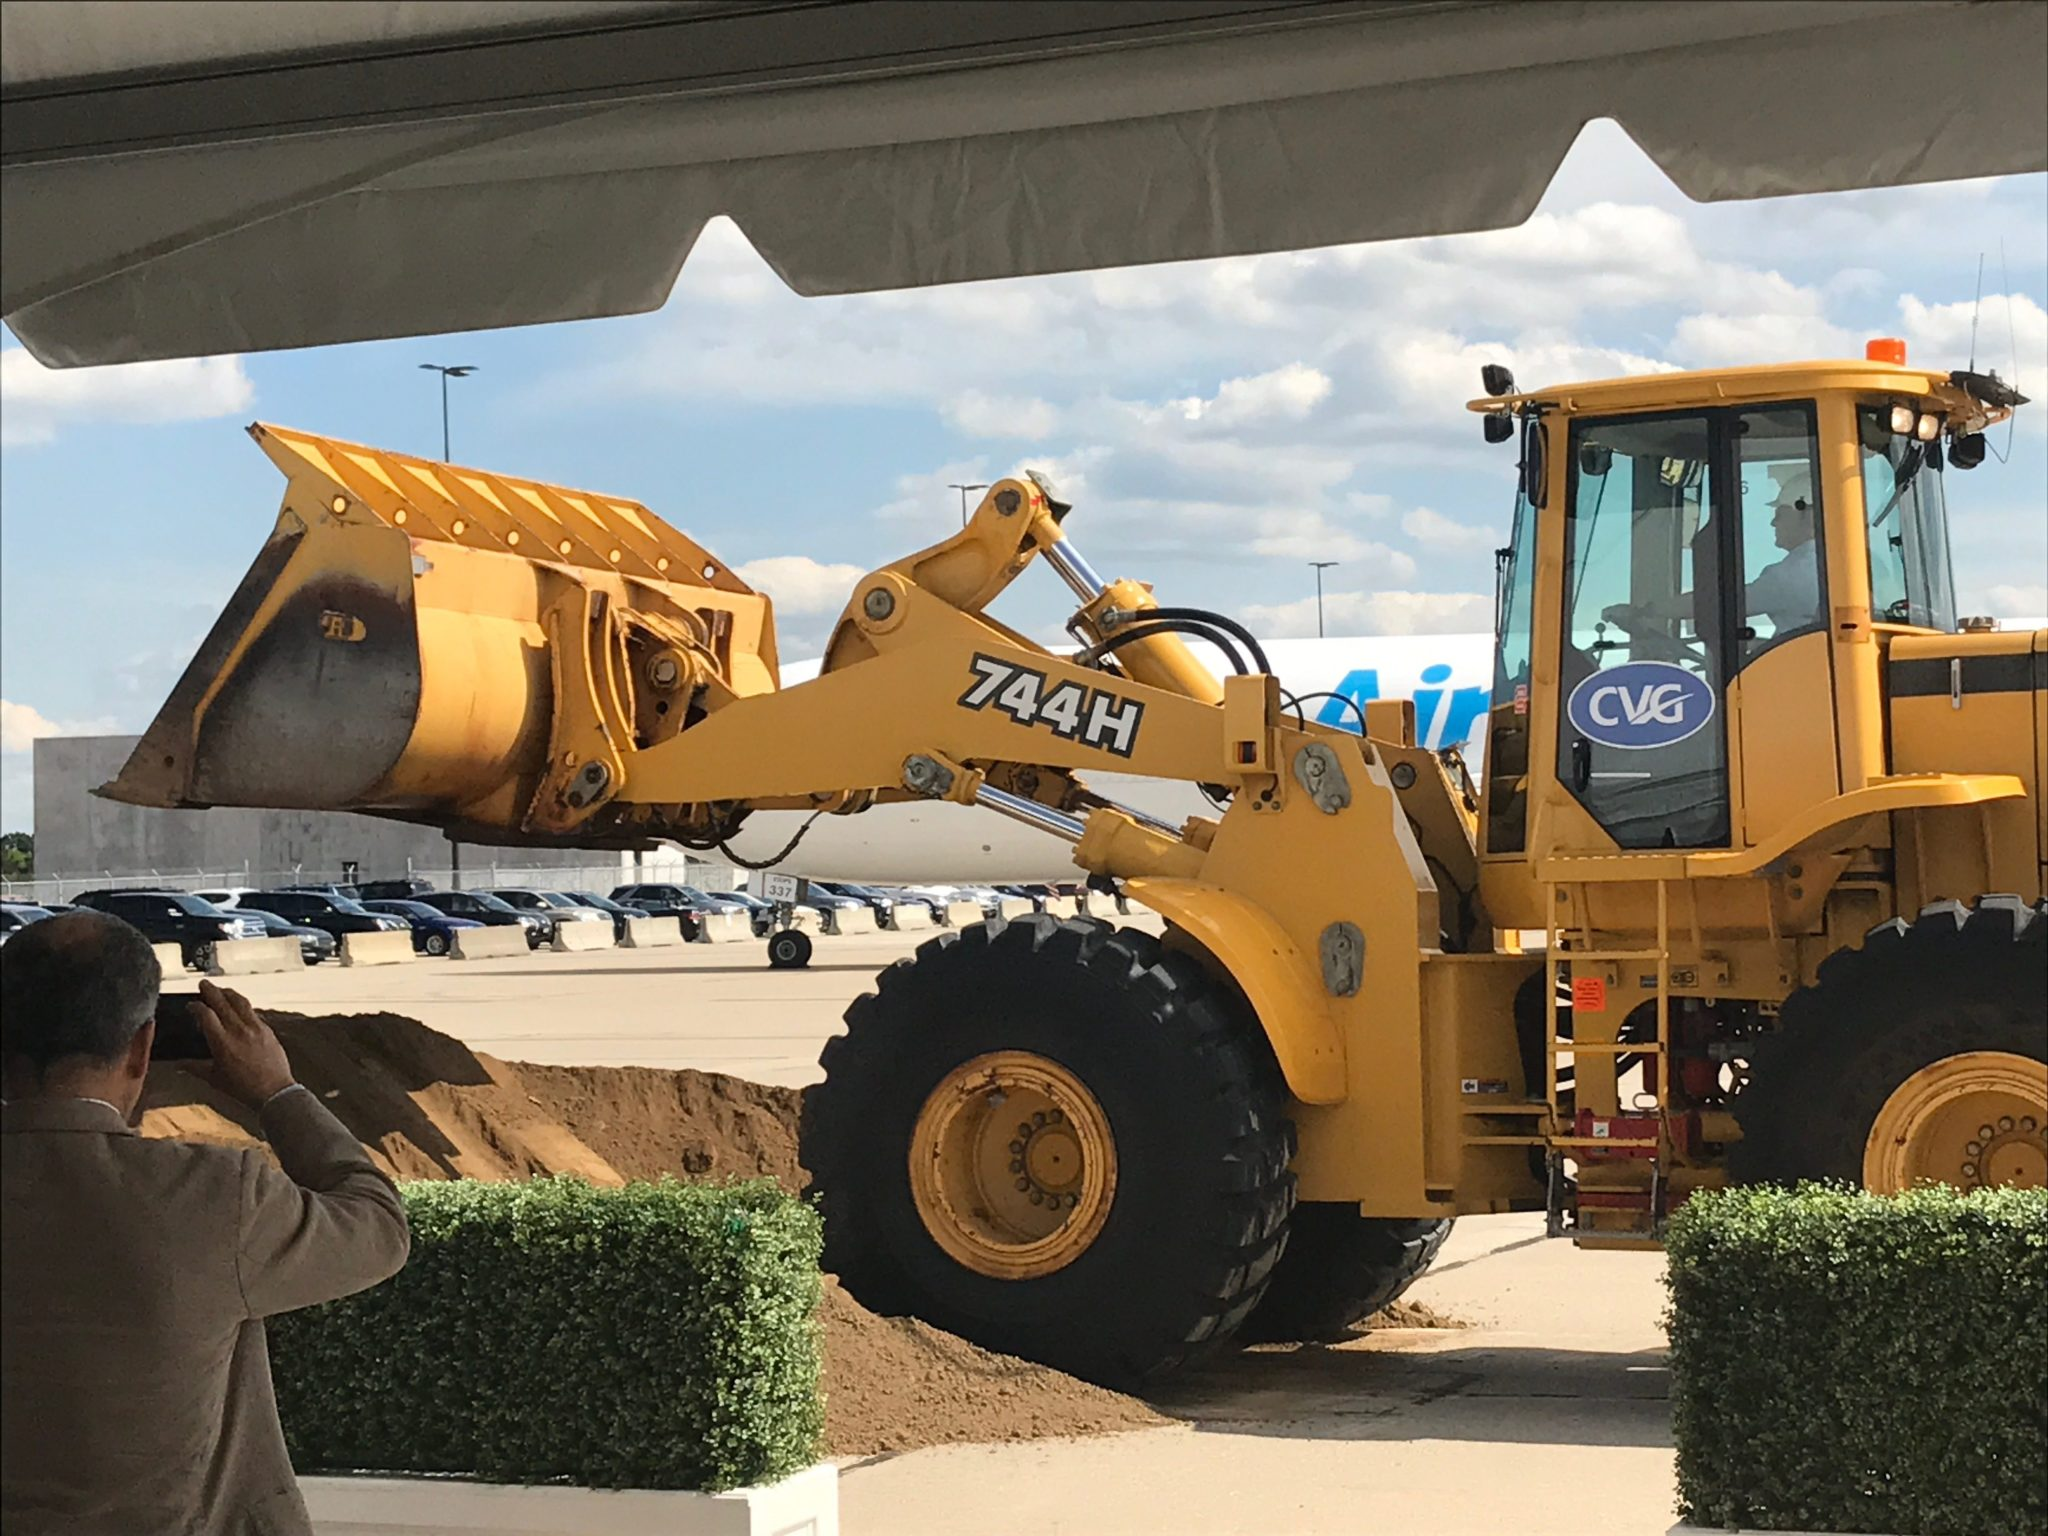 Jeff-Bezos-drives-a-bulldozer-at-Amazon-airport-project-2 Jeff Bezos drives a bulldozer at Amazon's airport project.